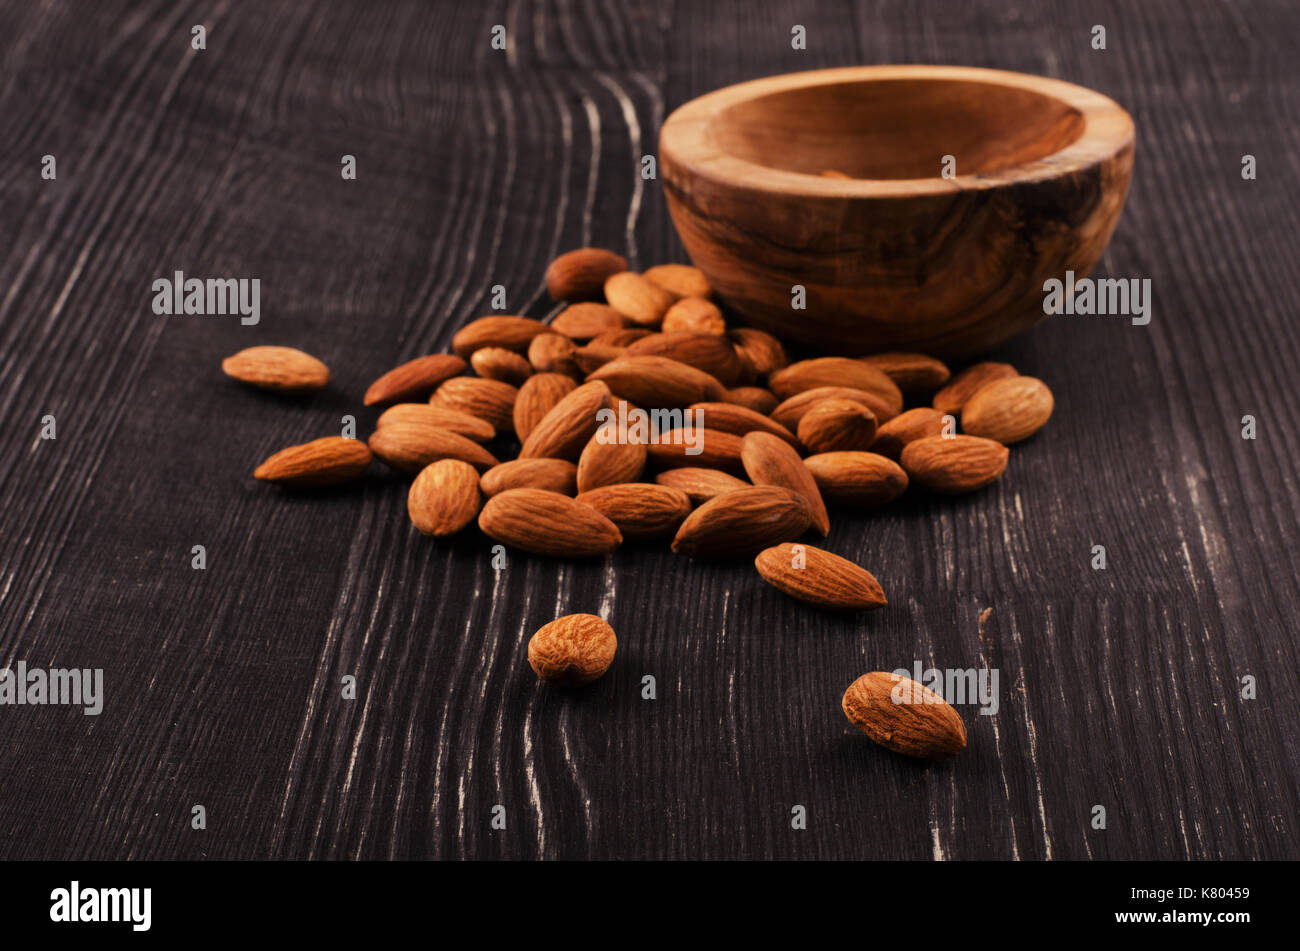 Almonds in brown bowl on wooden background - Stock Image